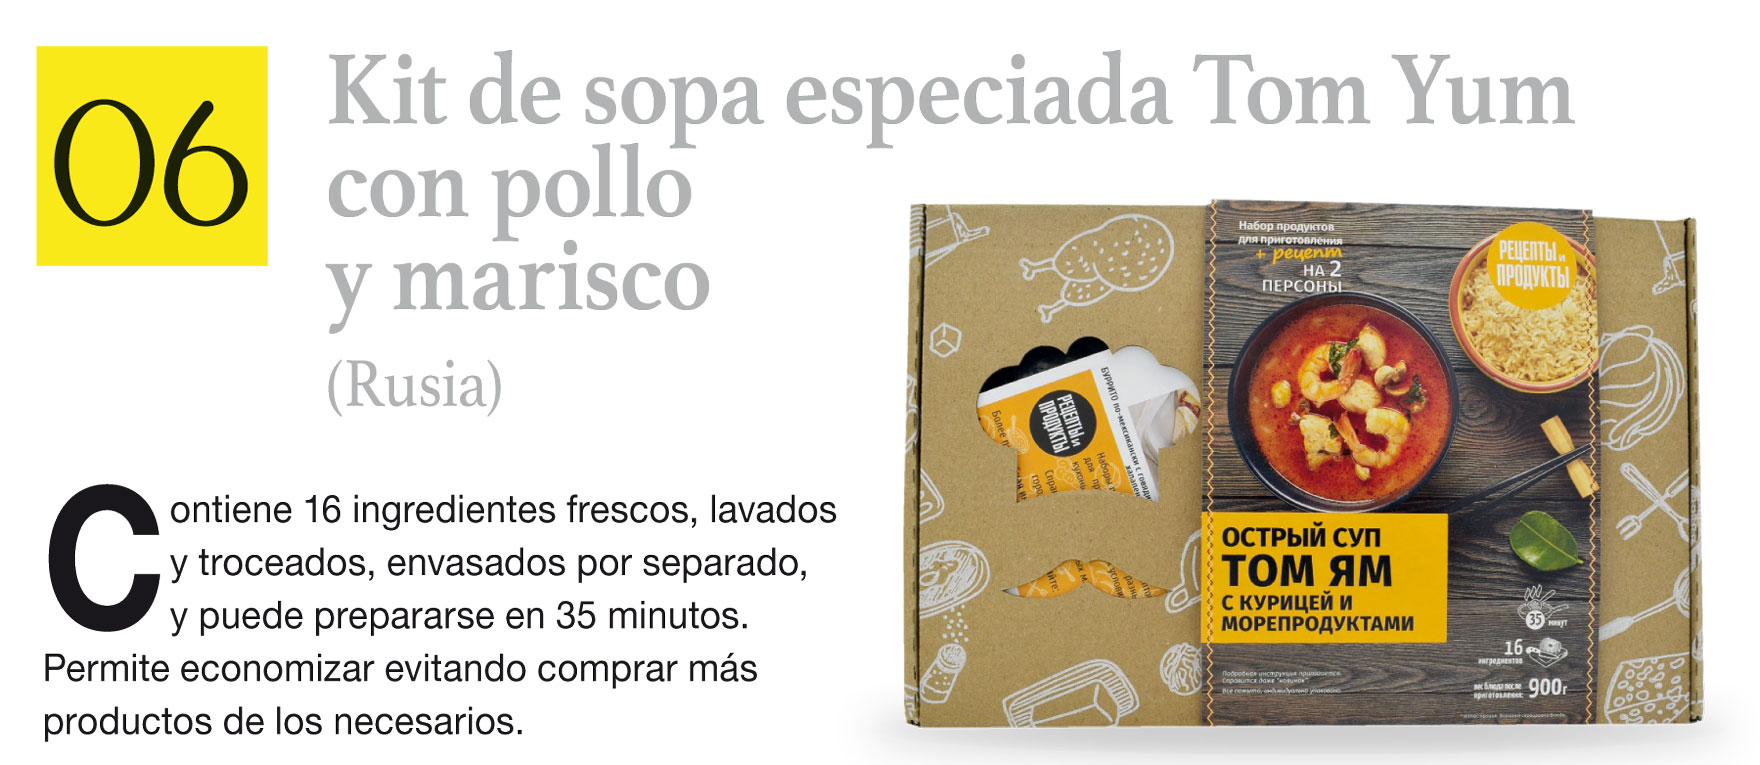 Kit de sopa especiada Tom Yum con pollo y marisco (Rusia)